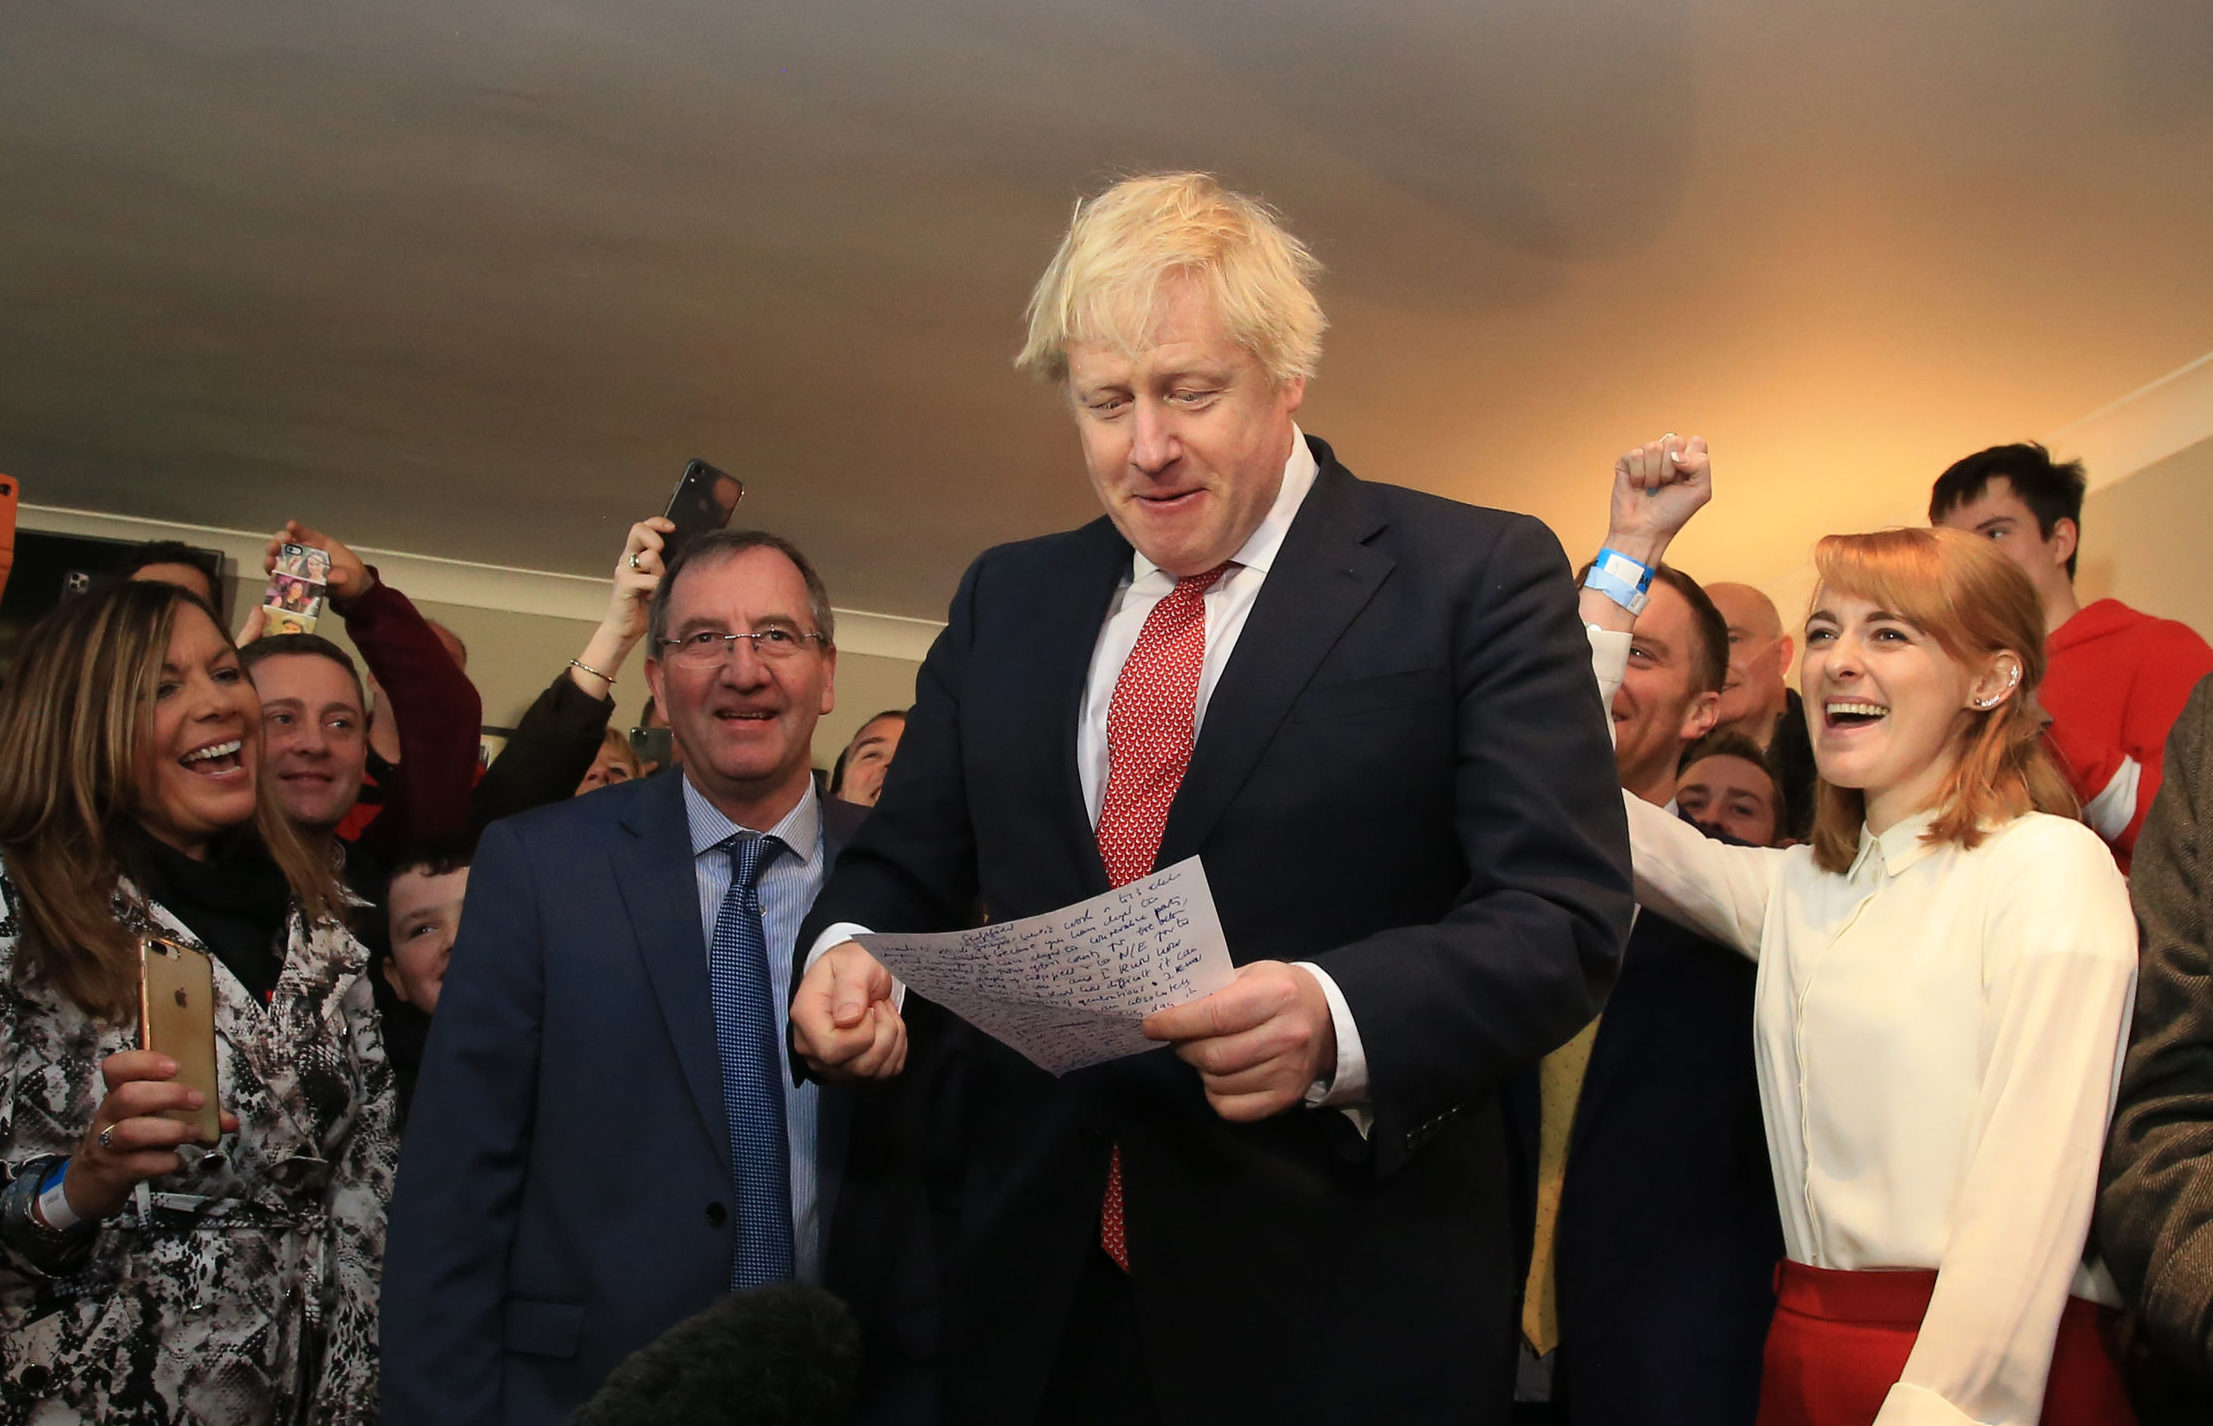 Boris Johnson speaks to  supporters in a cricket club in Sedgefield in Durham after the Tory election victory